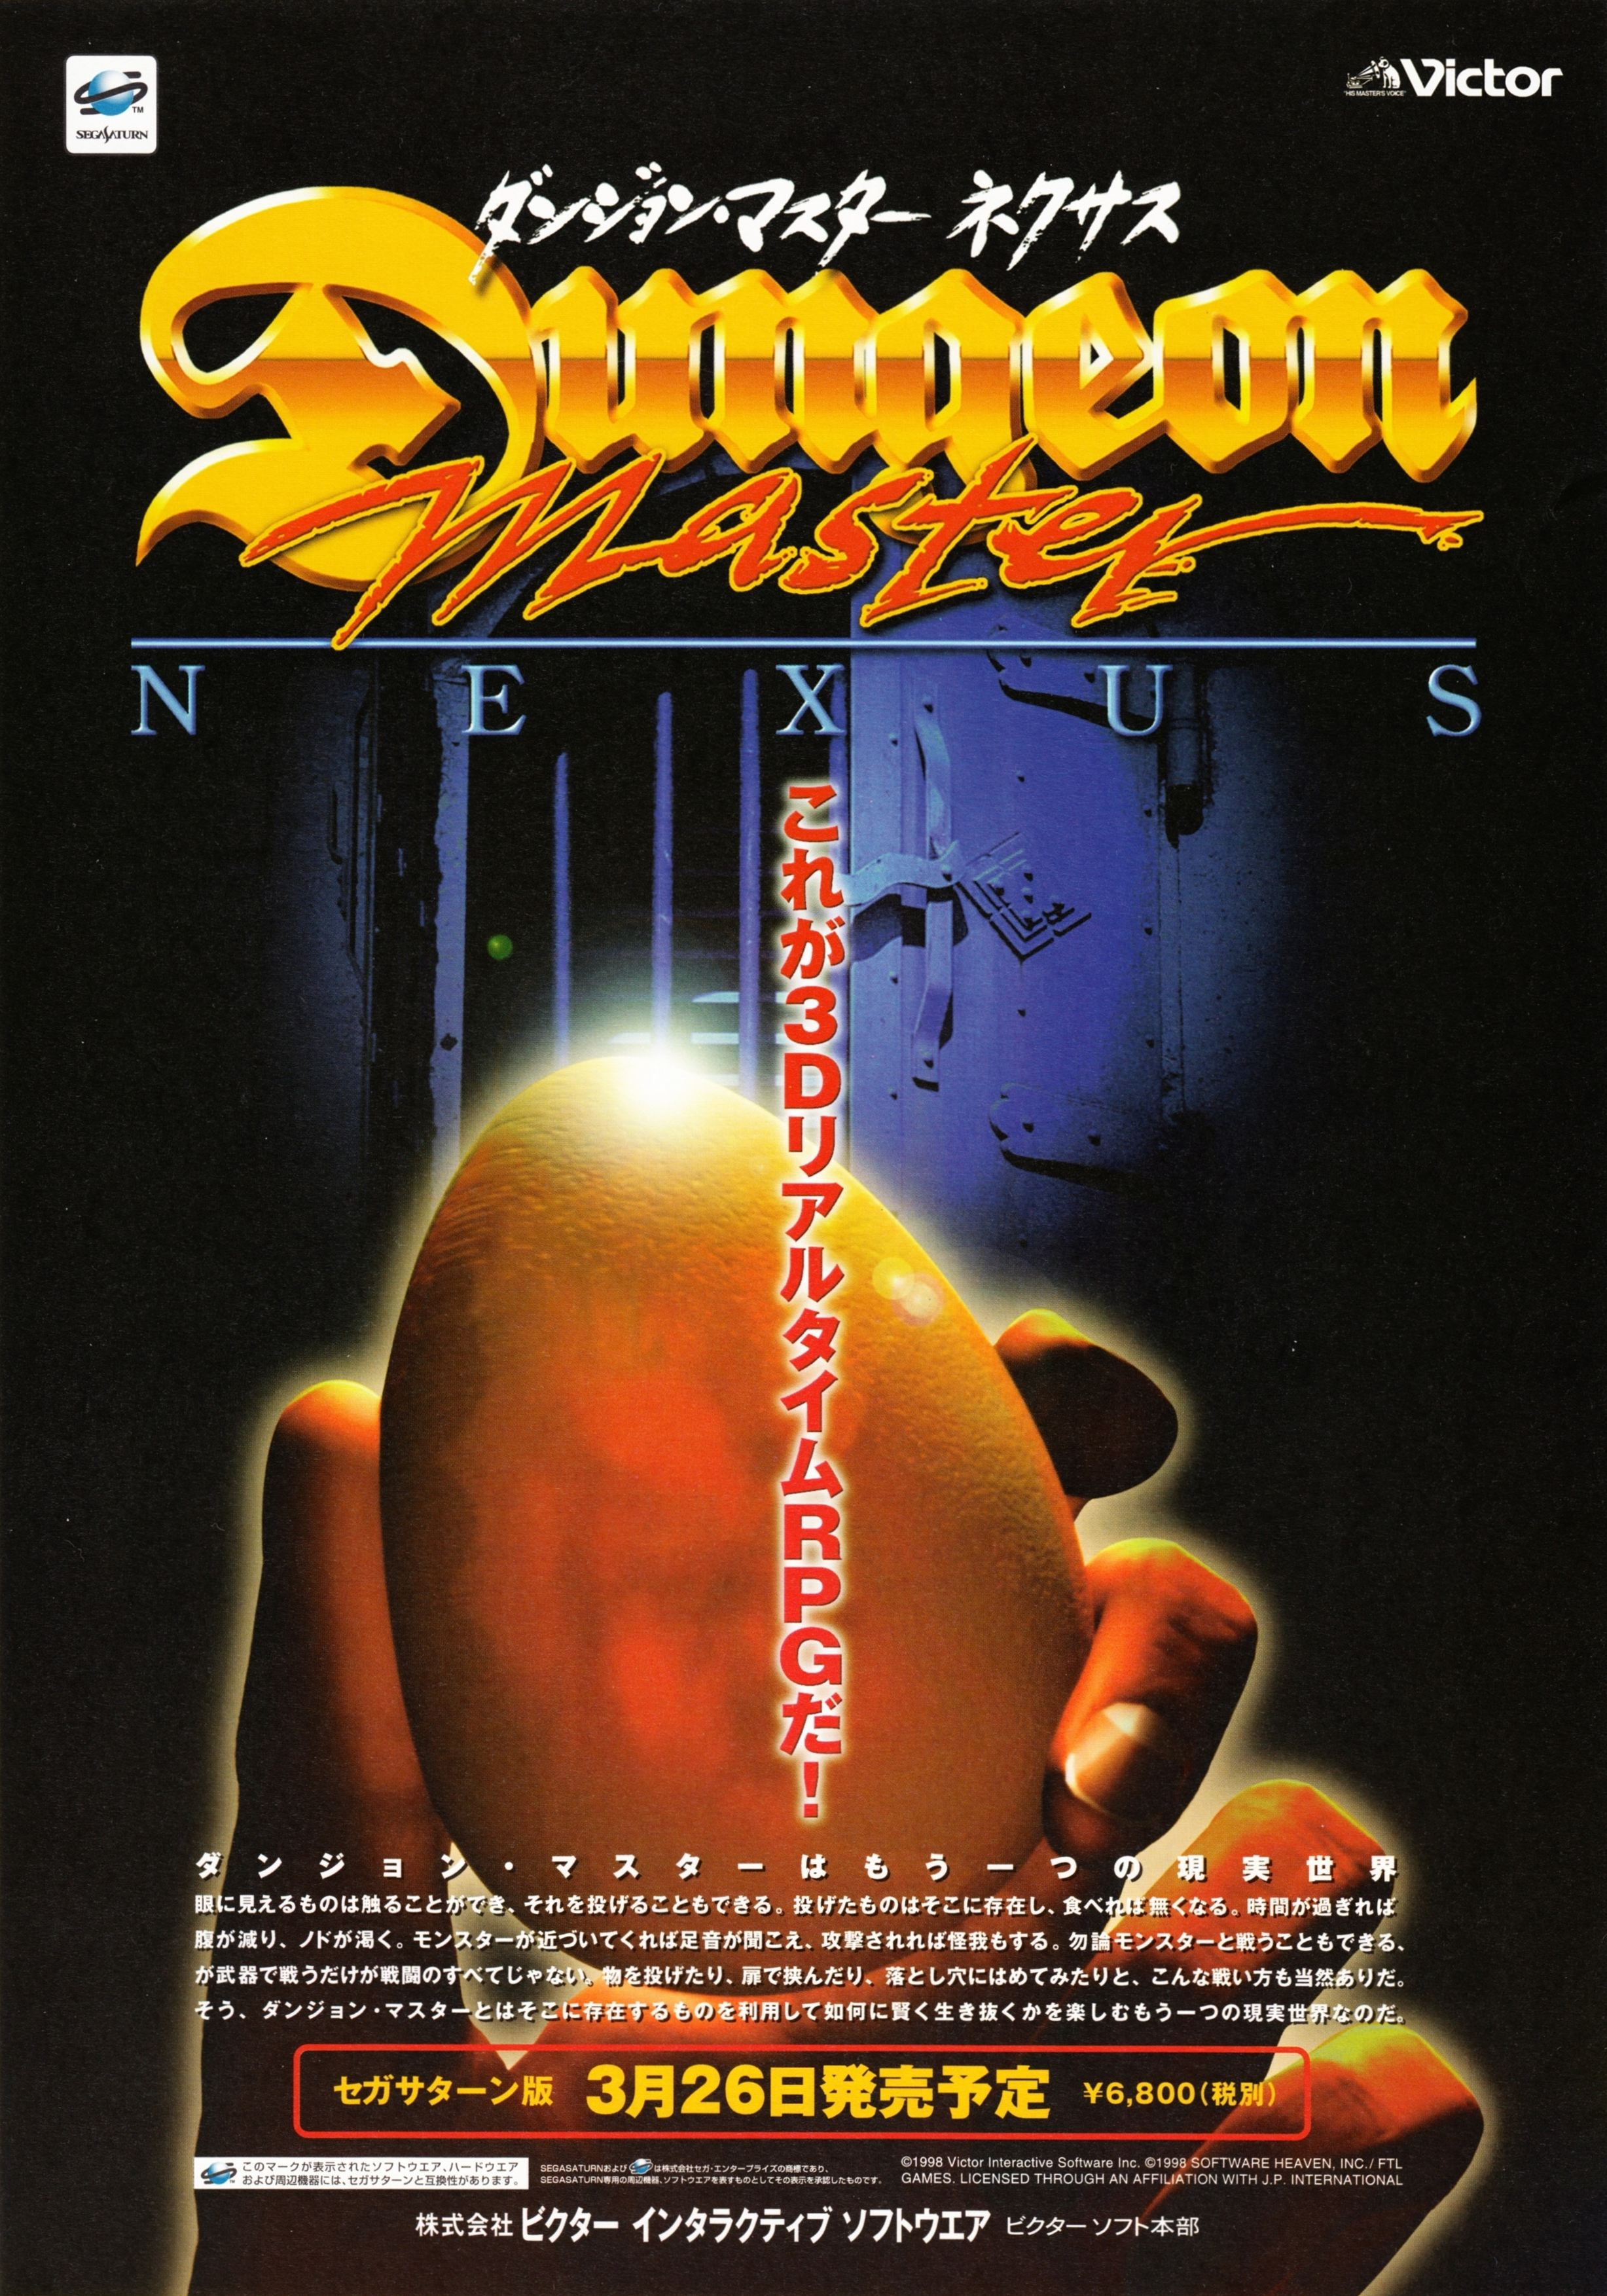 Flyer - Dungeon Master Nexus - JP - Sega Saturn - Front - Scan